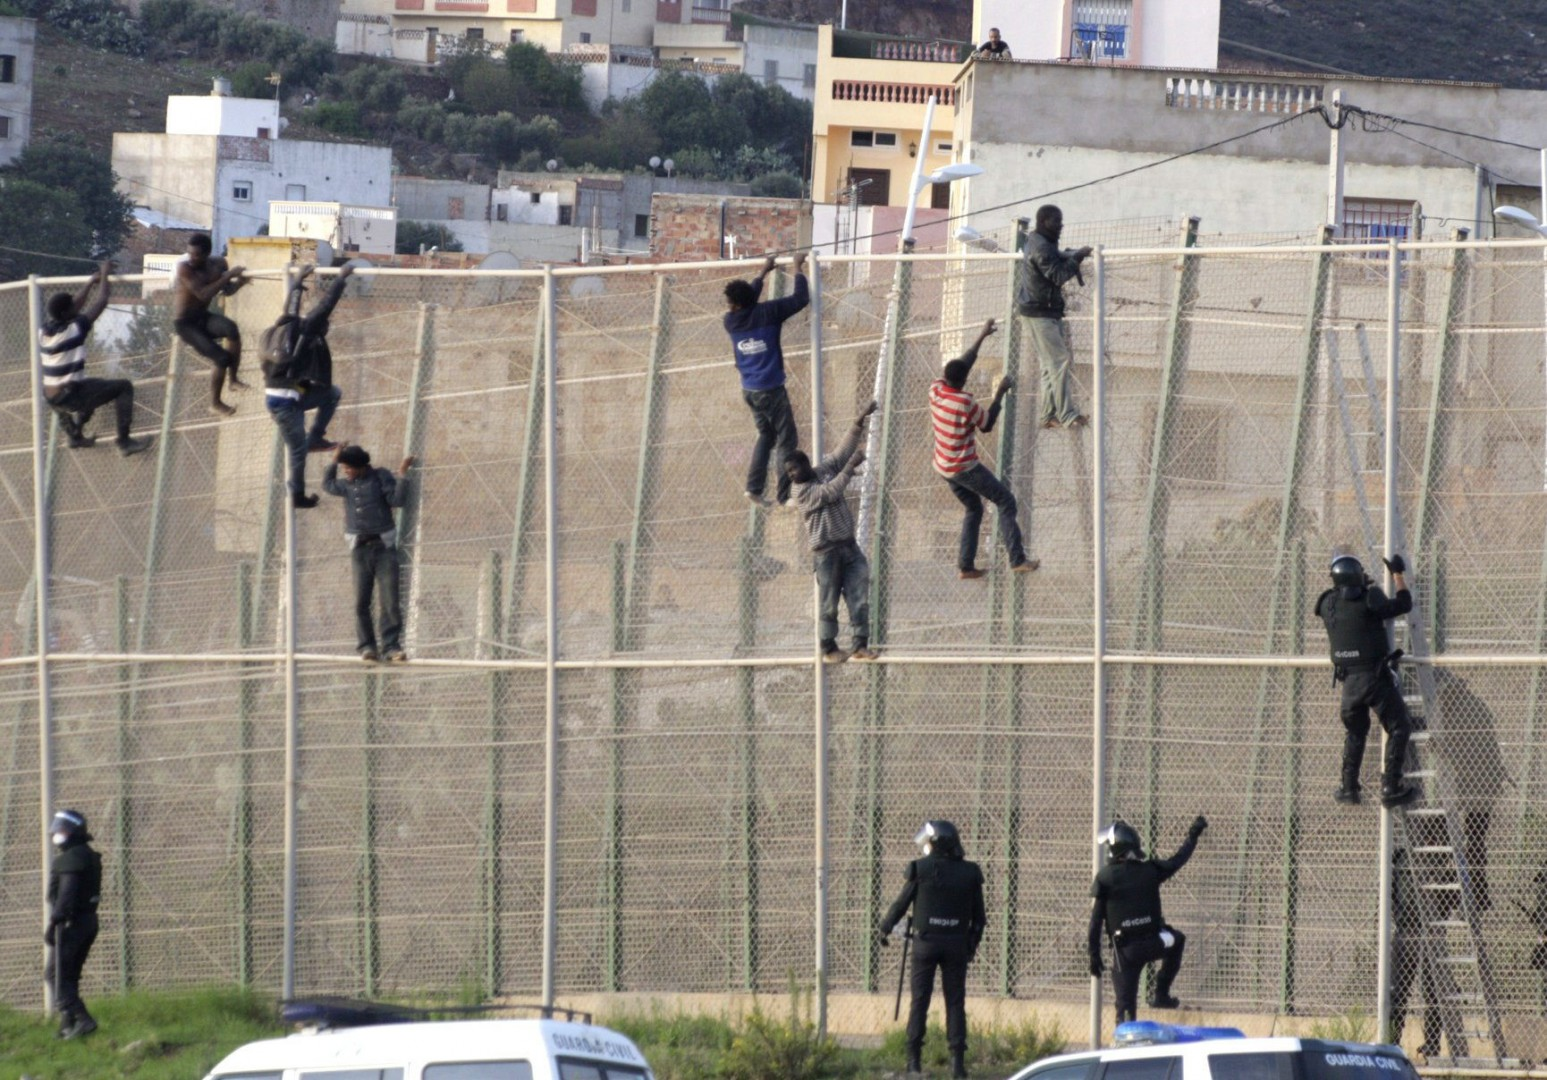 Policemen watch a group of Sub-saharan immigrants who climbed the fence at the border between Morocco and Melilla, the Spanish enclave on the north of Africa, in another mass attempt to enter Melilla, 15 october 2014. Some 200 immigrants tried to cross into Melilla. EFE/F. G. Guerrero